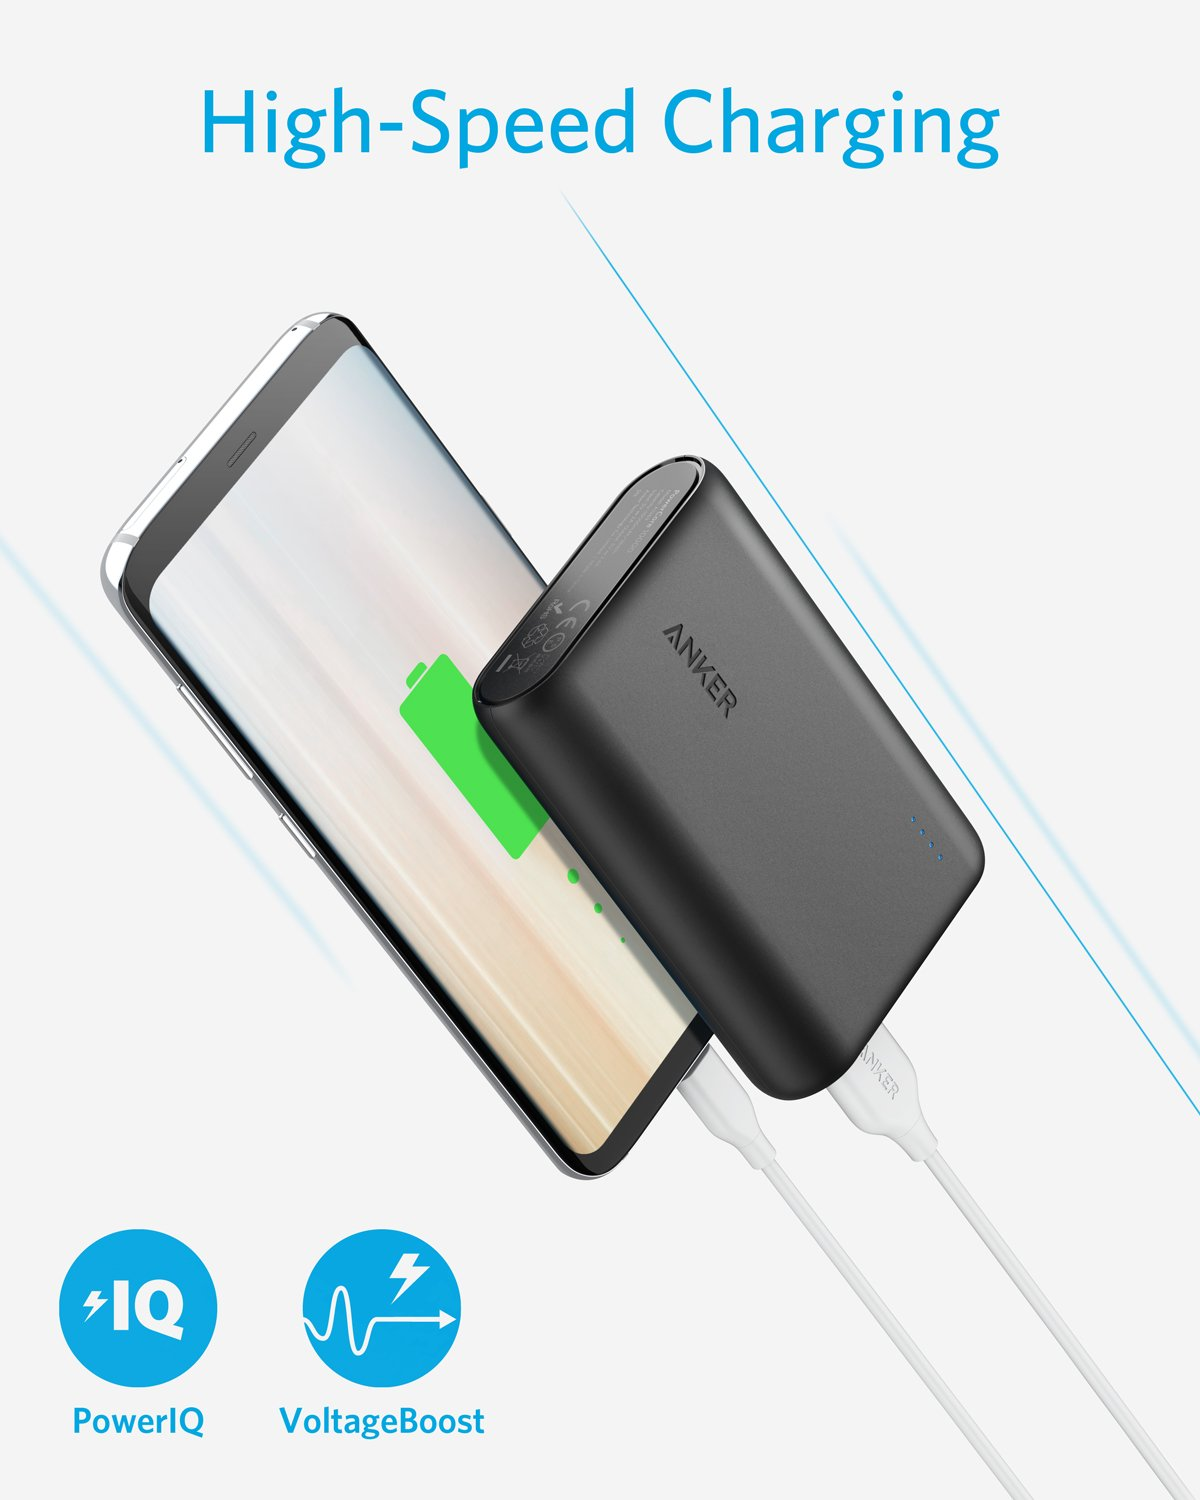 Anker PowerCore 10000 Portable Charger One of The Smallest and Lightest 10000mAh Power Bank